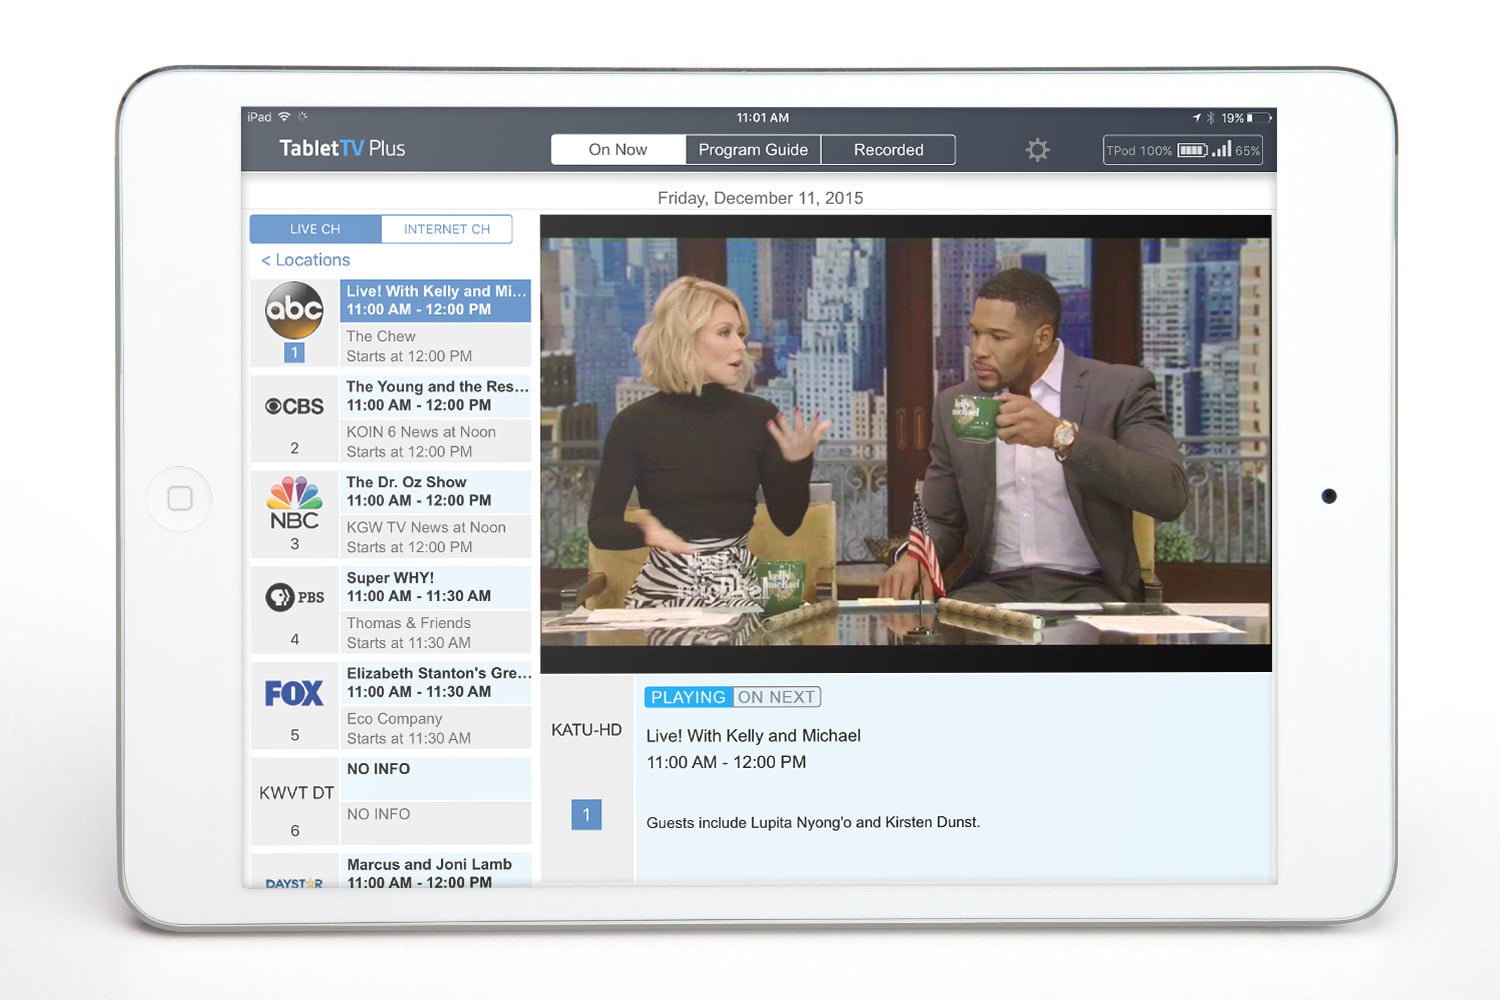 tablet tv first look hands on video review tablettv ios app 7